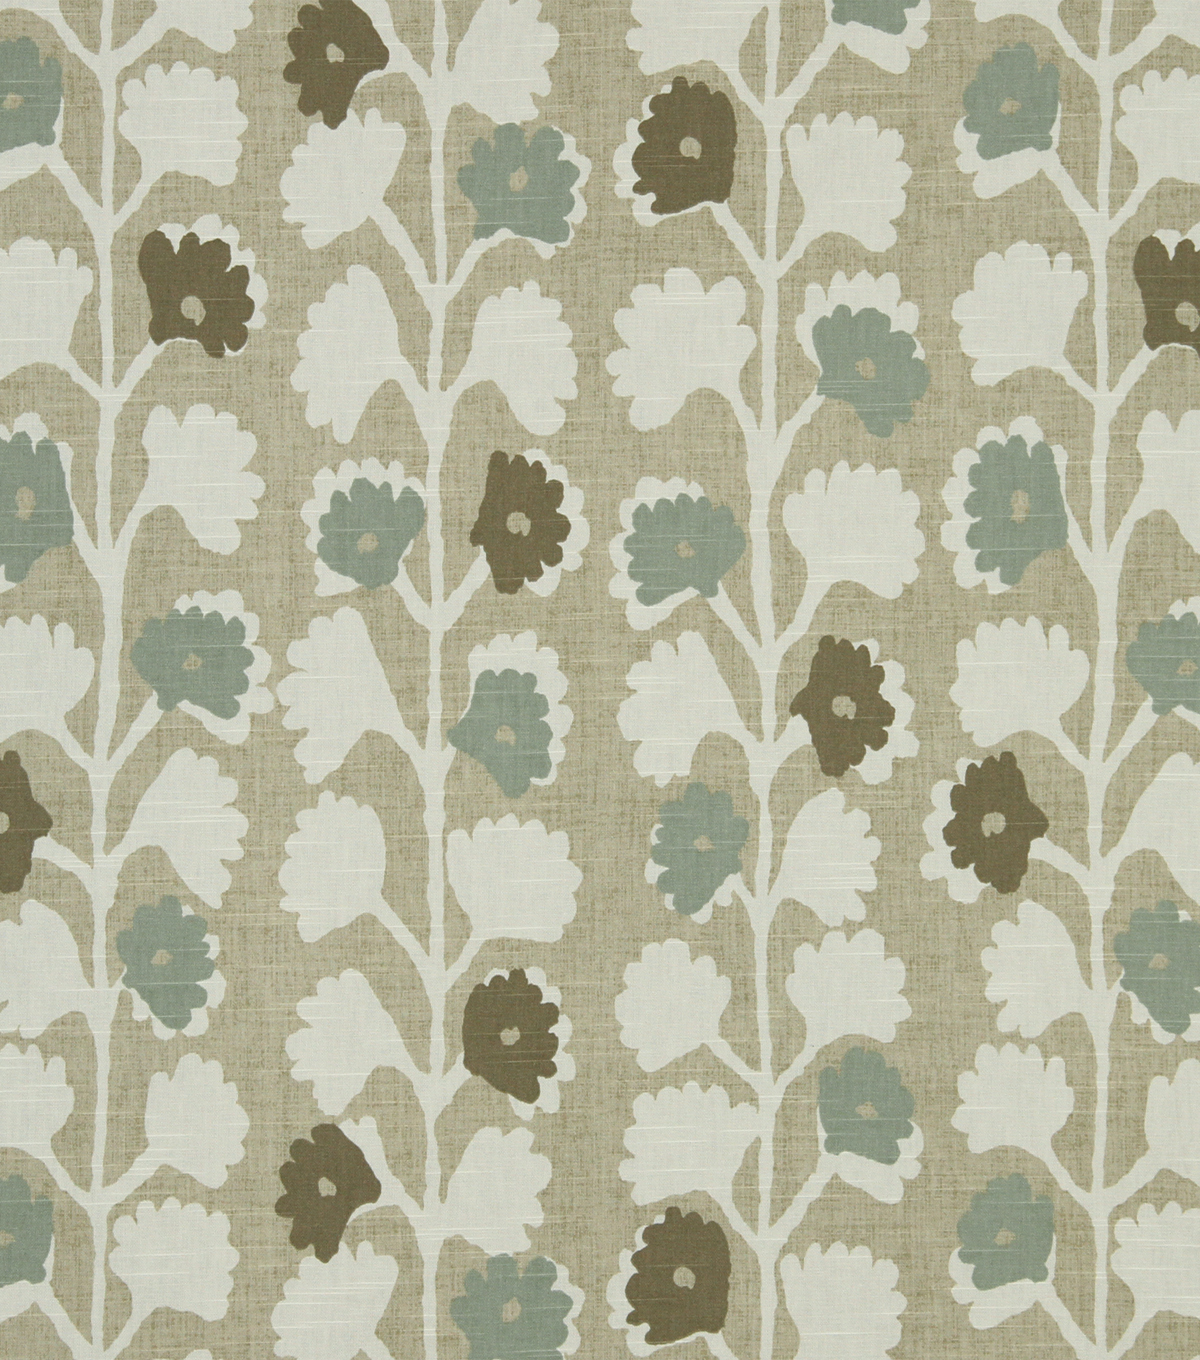 Home Decor 8\u0022x8\u0022 Fabric Swatch-Robert Allen Surreal Vines Twine